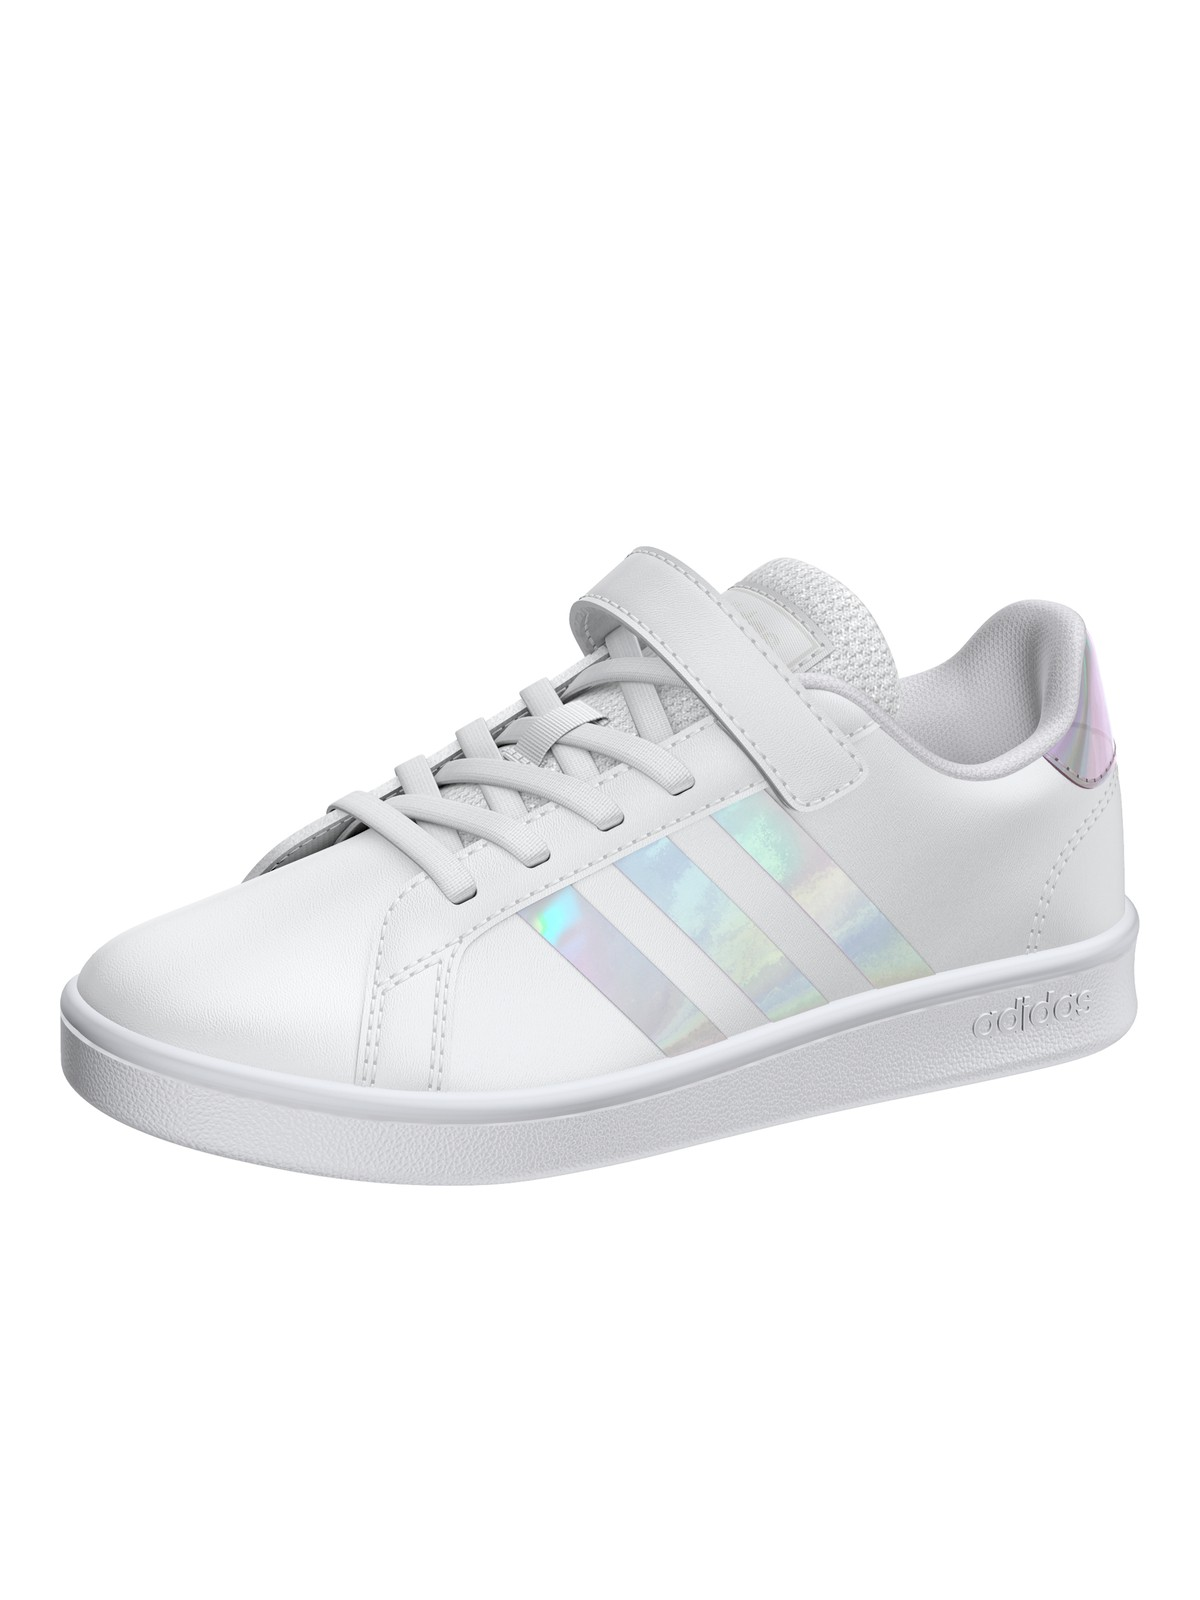 Tennis adidas fille blanches (28-35) - DistriCenter